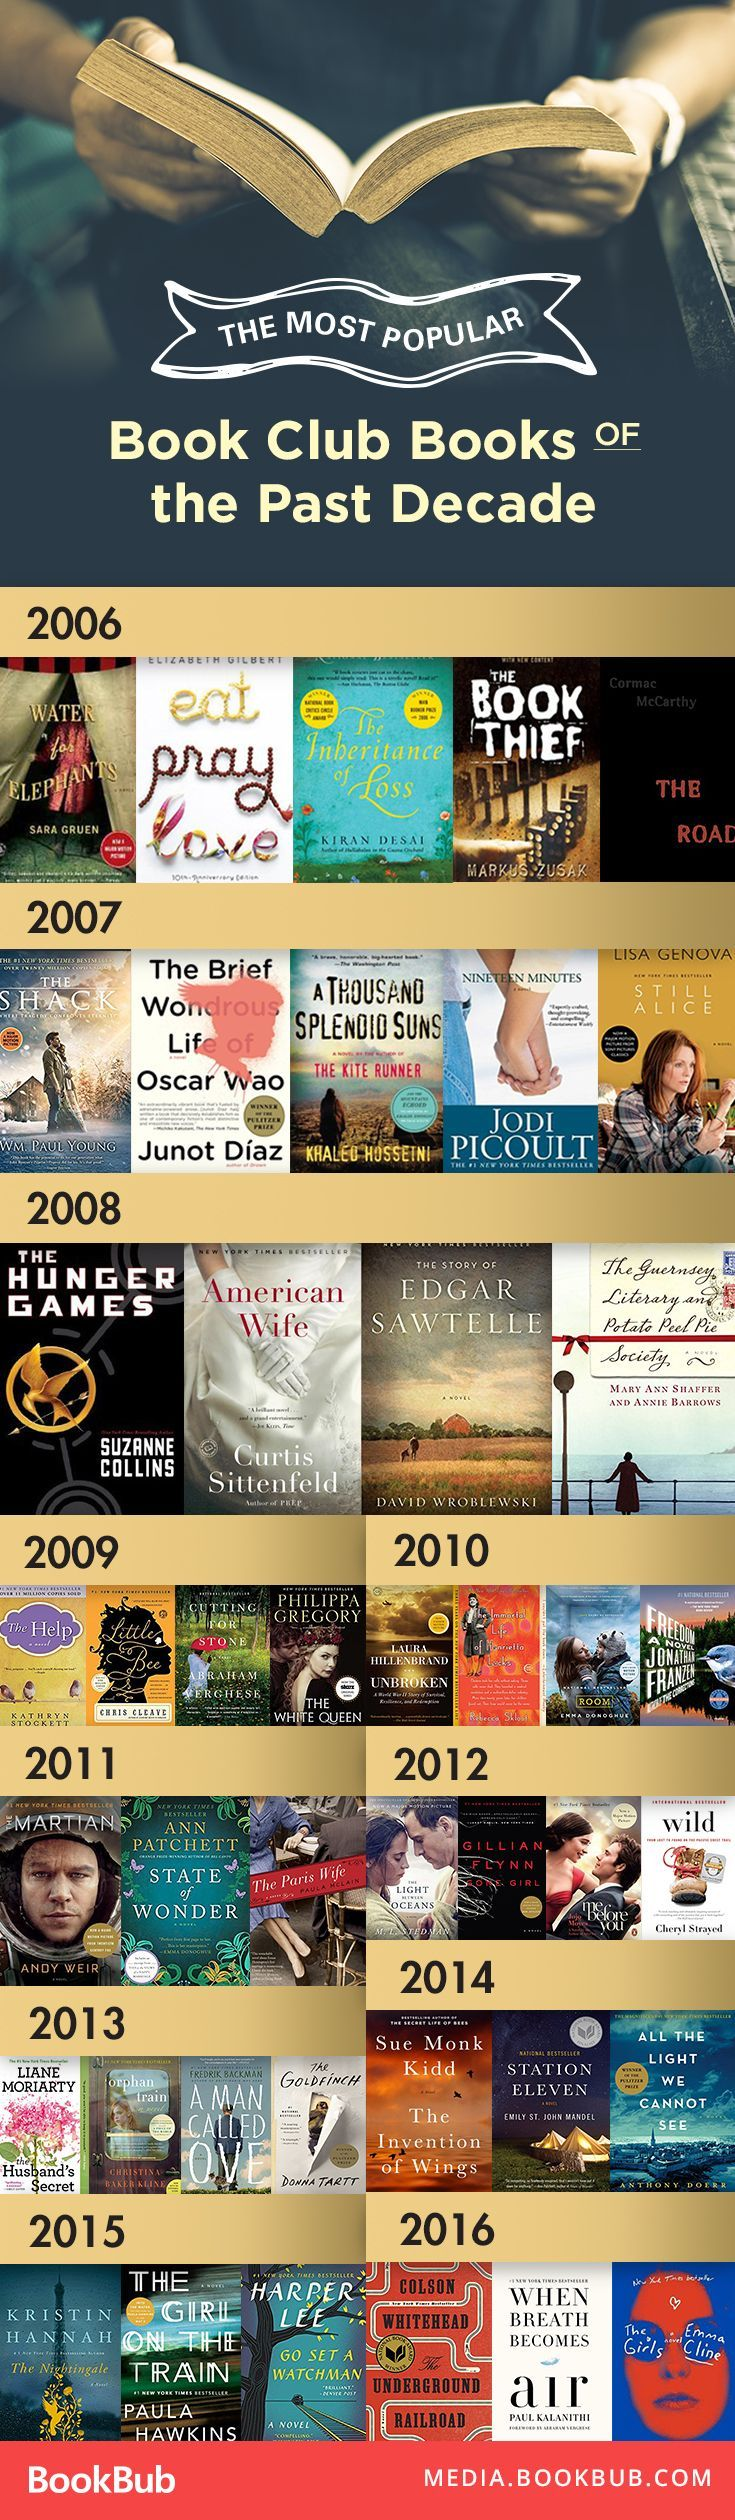 These biggest book club books from the past decade are definitely books worth reading. Must add to your 2017 reading list!